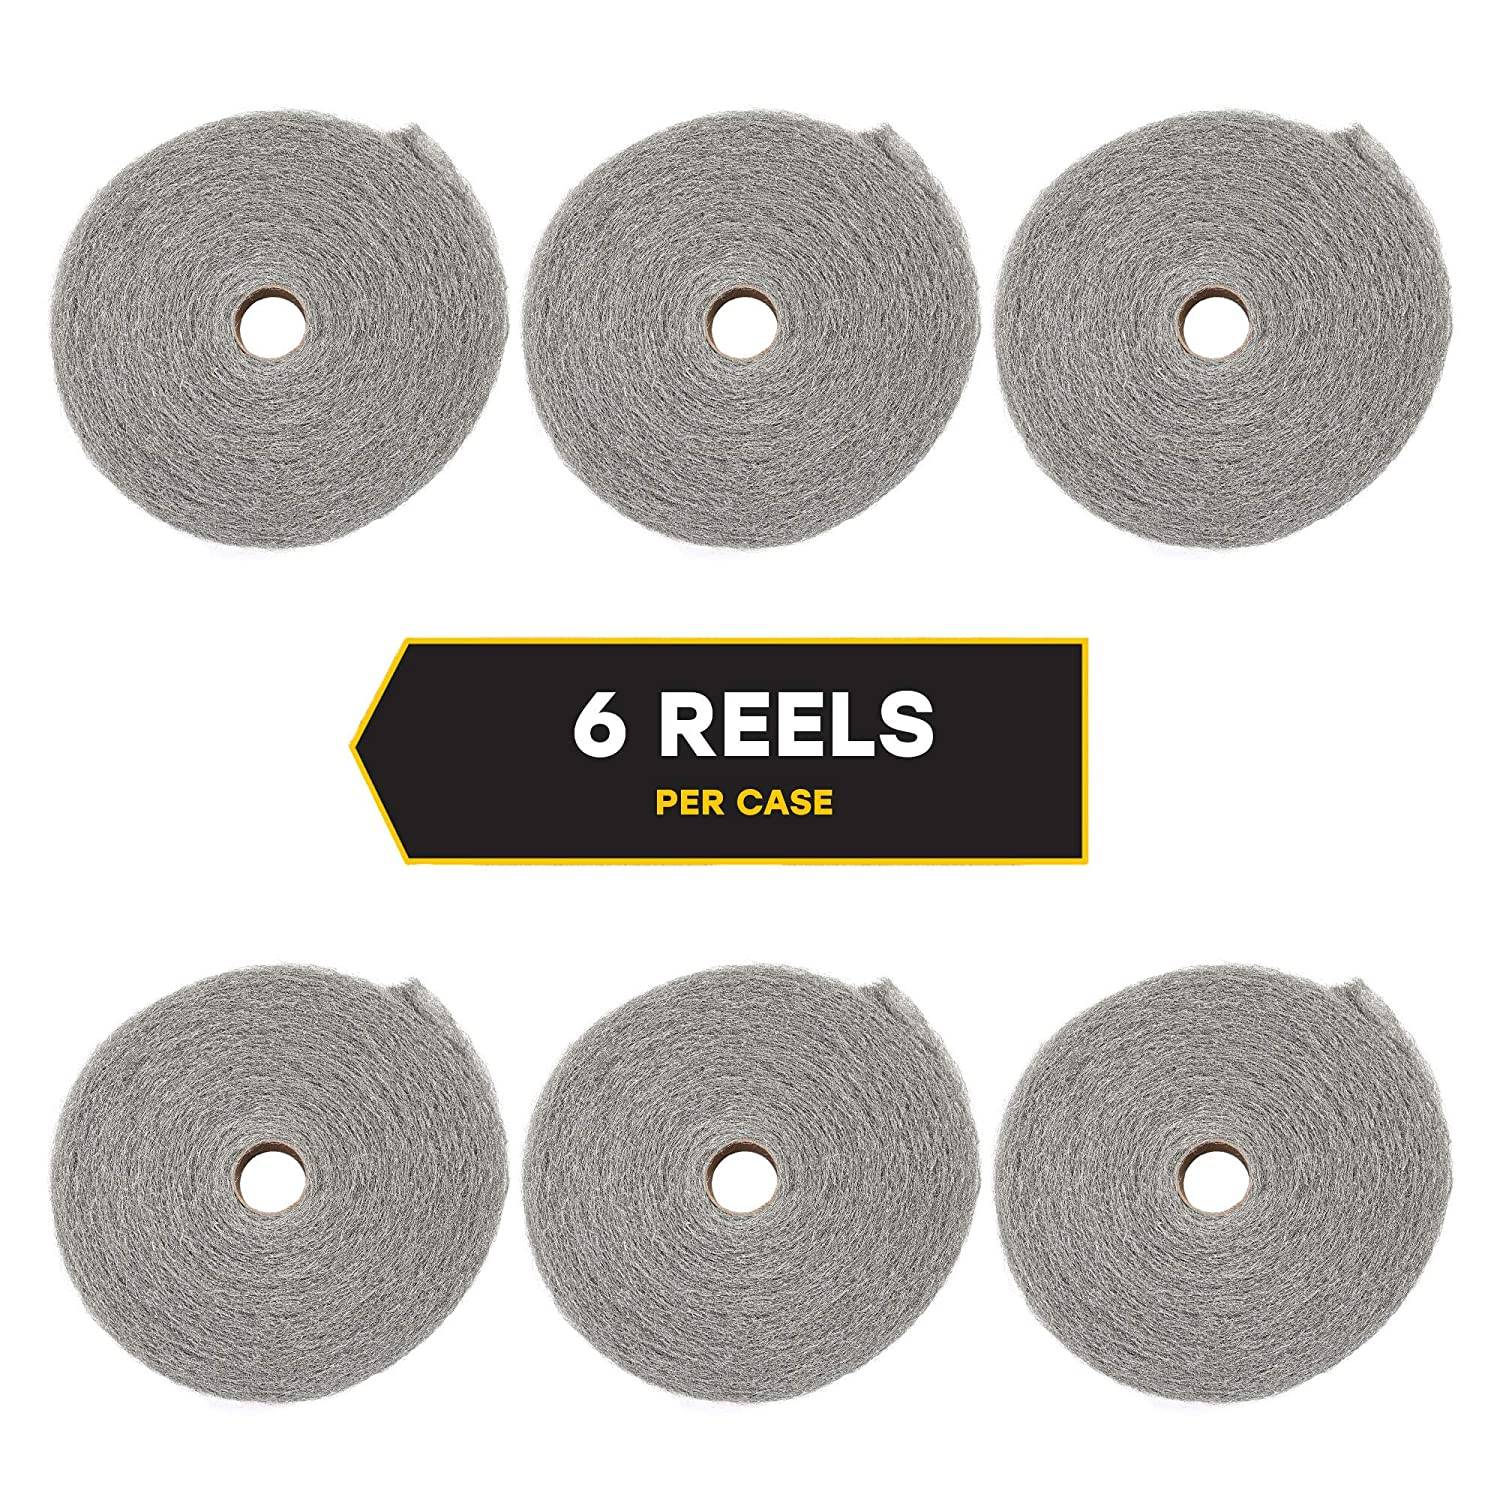 ; 5 lb Reel 161060 Case of 6; For Rusting and Corrosion Global Material Technologies 316L Stainless Steel Wool Reel 0 Fine Grade